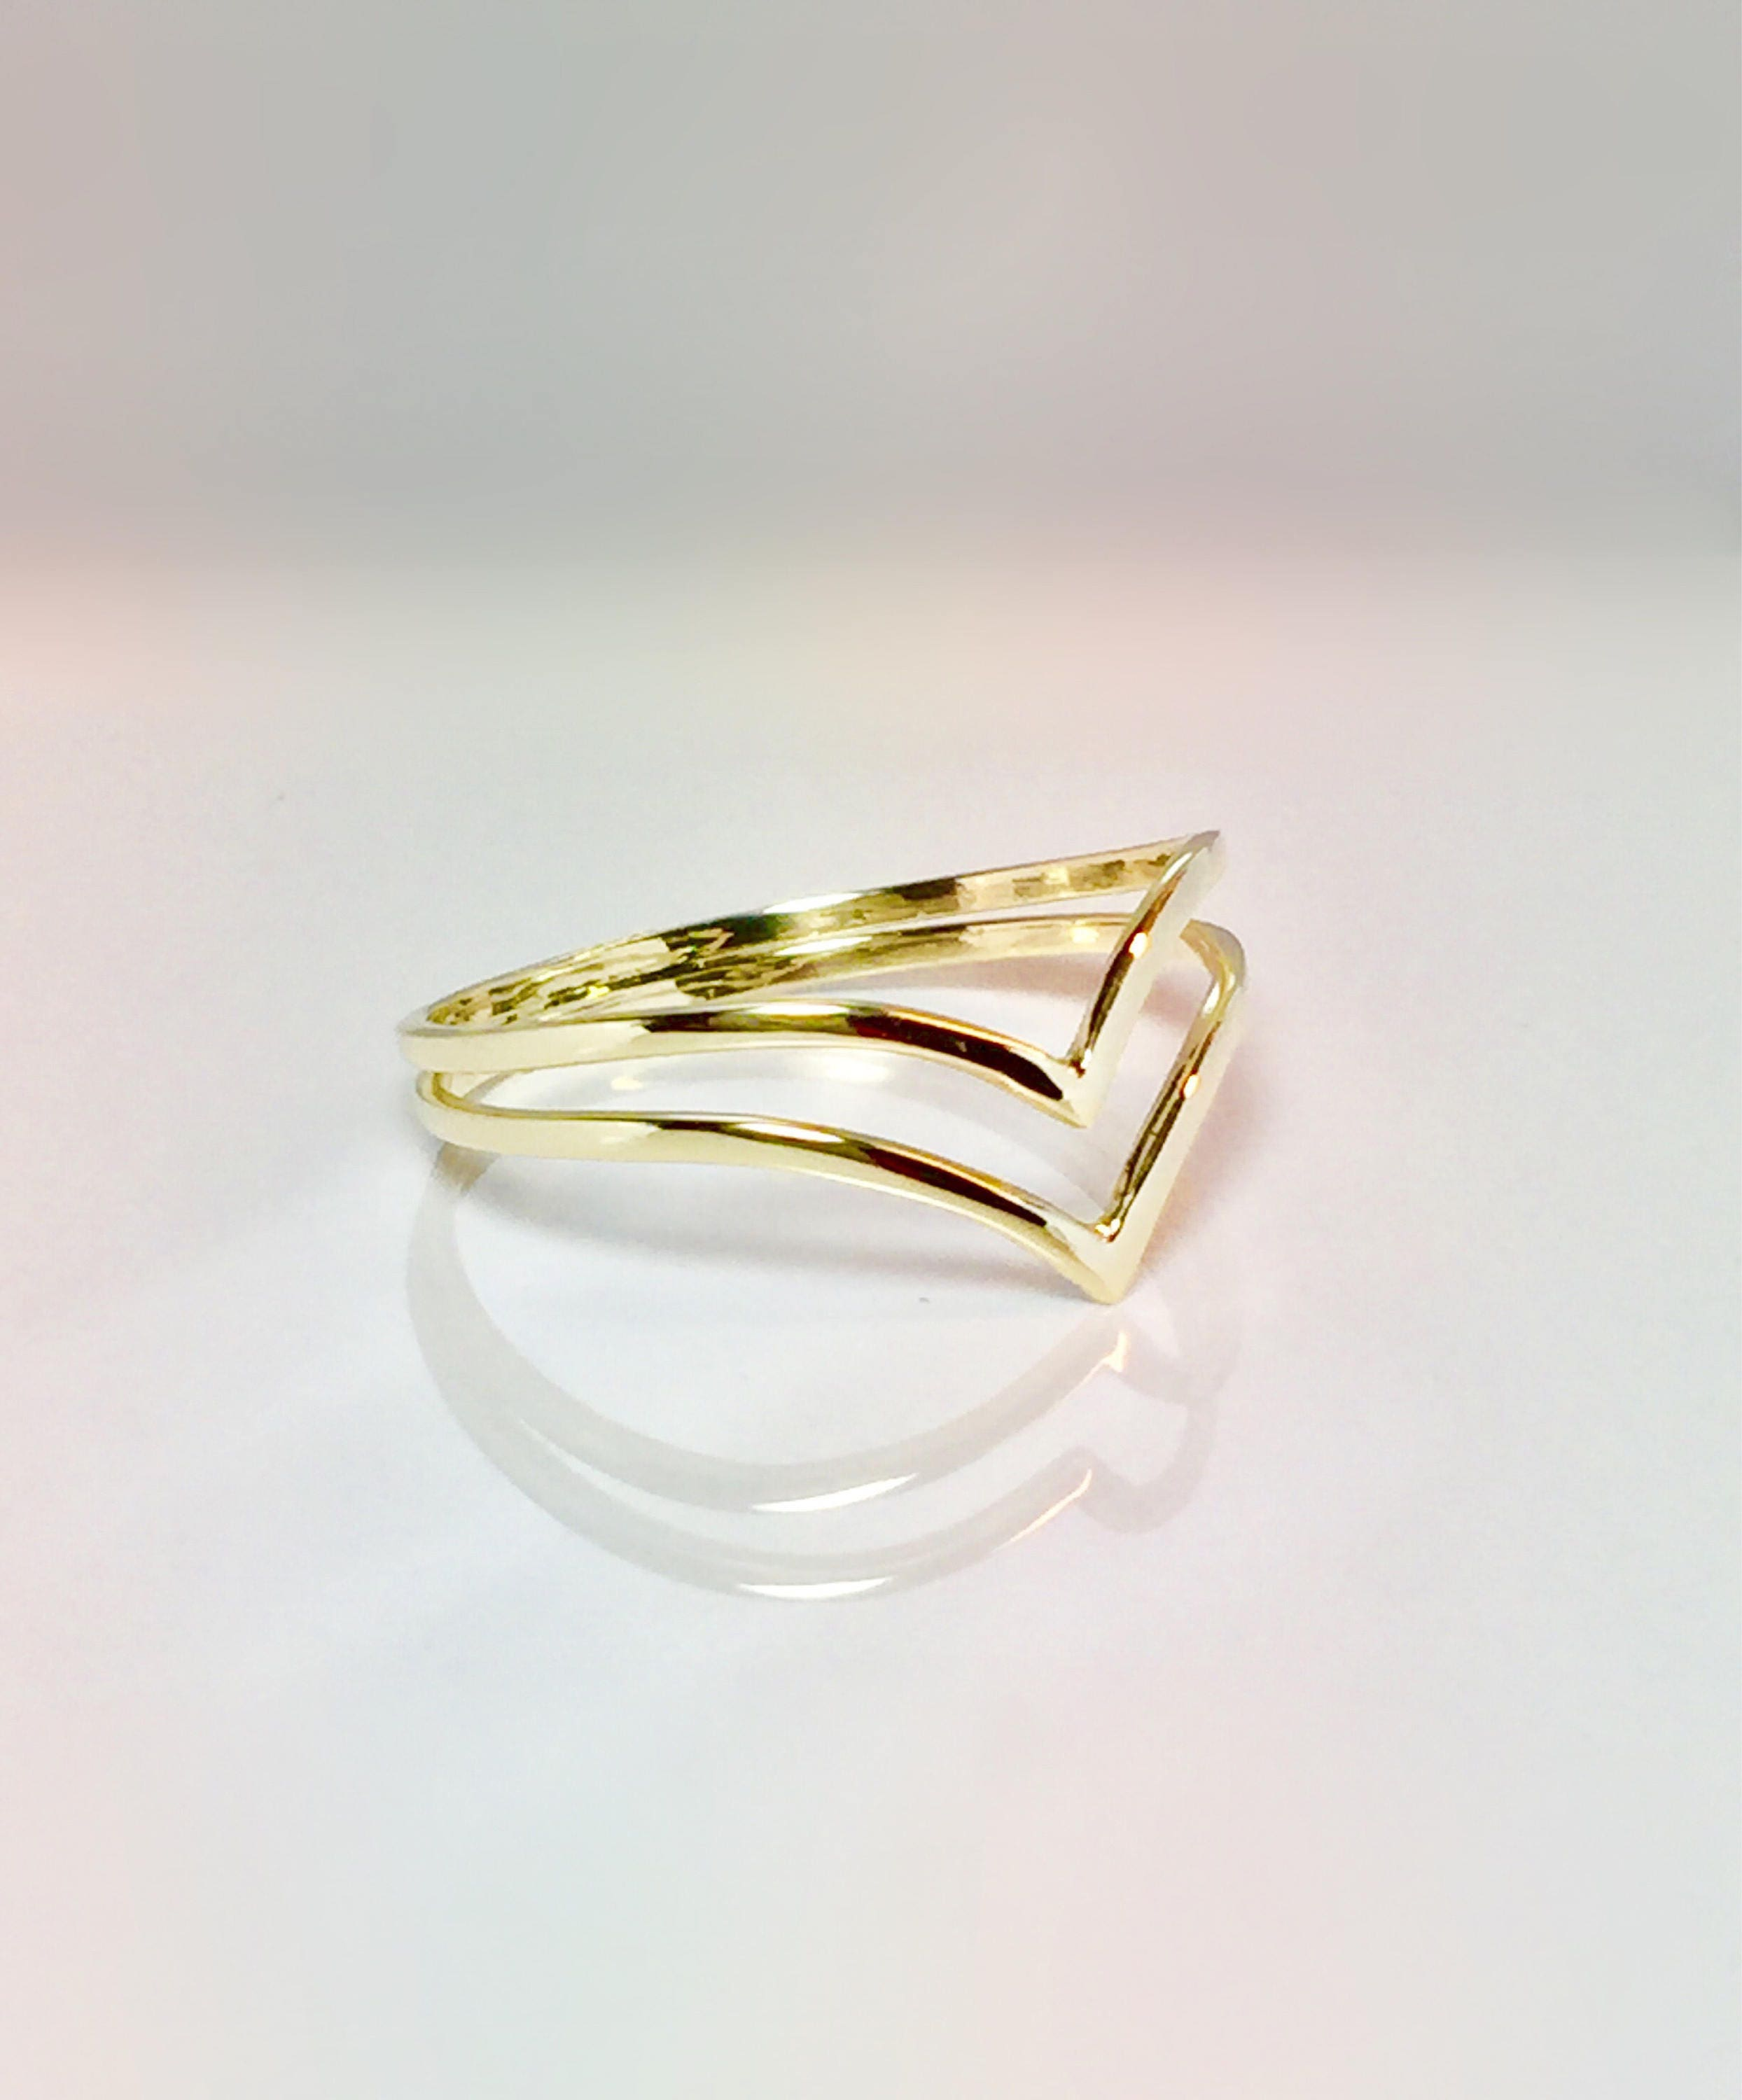 14k/10k Gold Ladies Double V Chevron Ring Gold Pinky Ring